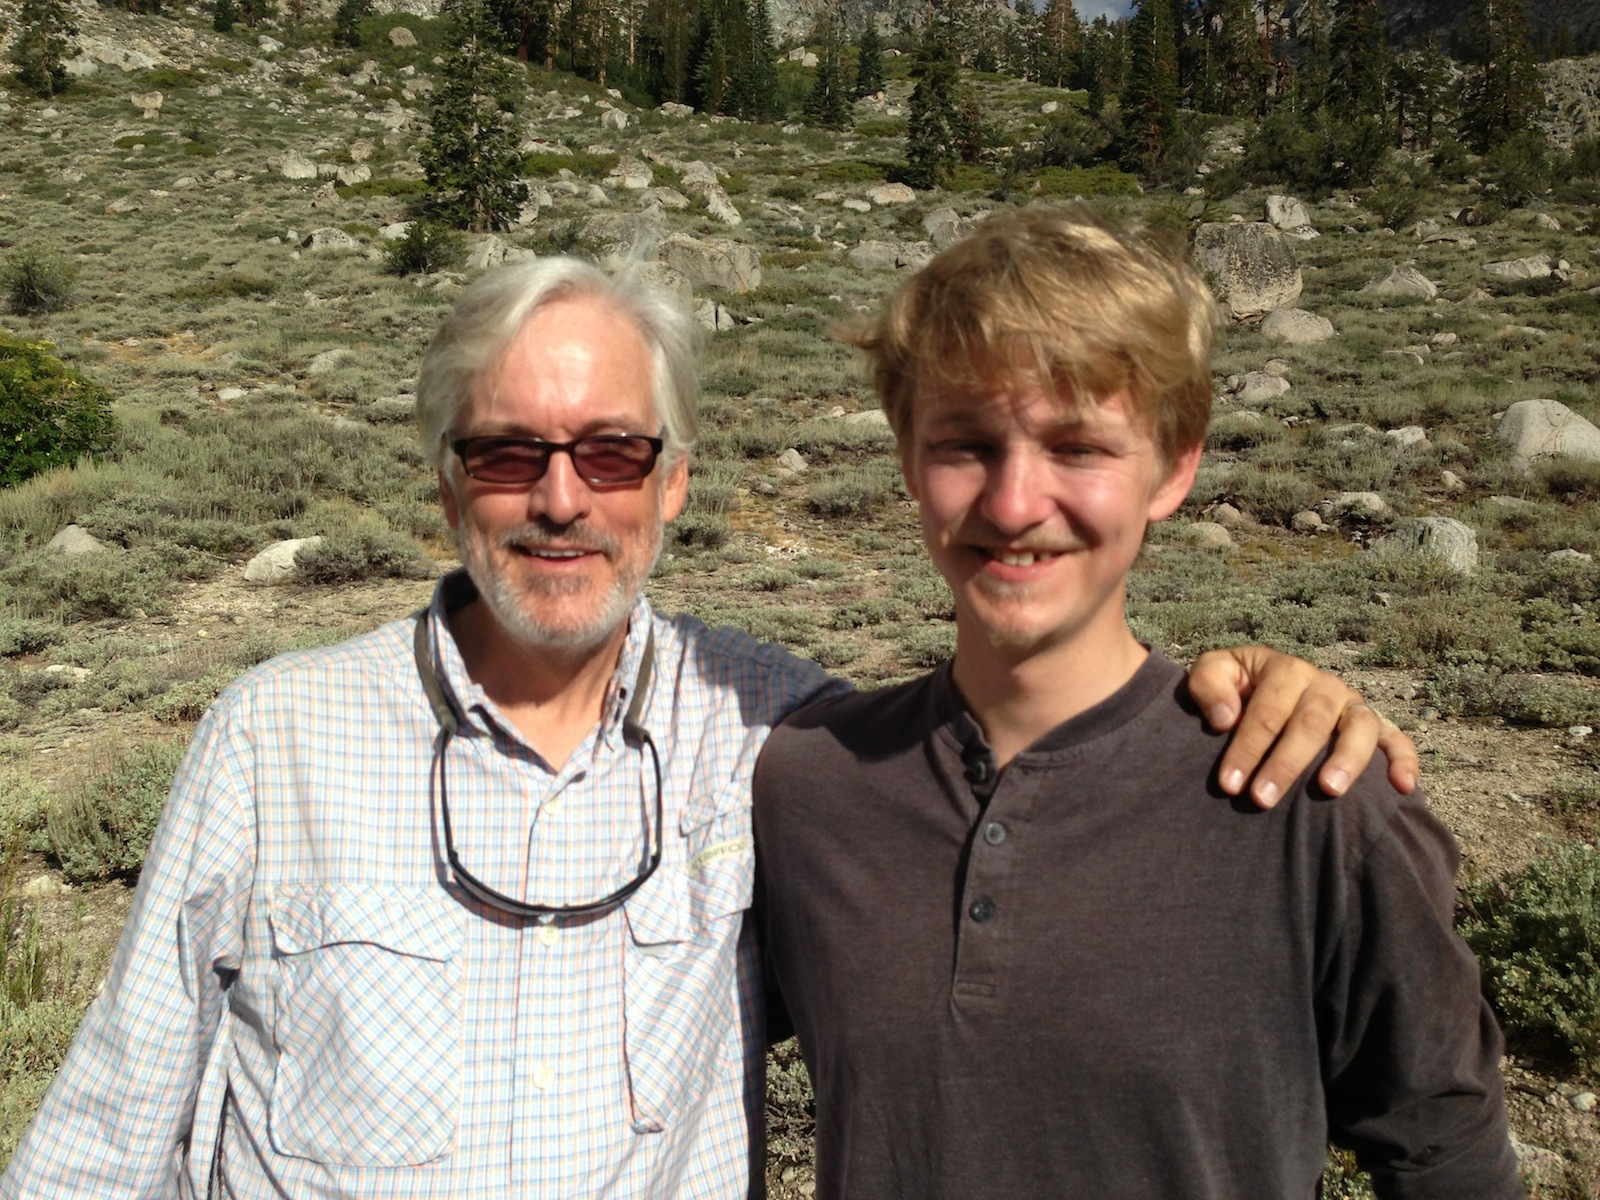 Father-son JMT hikers Greg and Justin on the way back over Kearsarge Pass